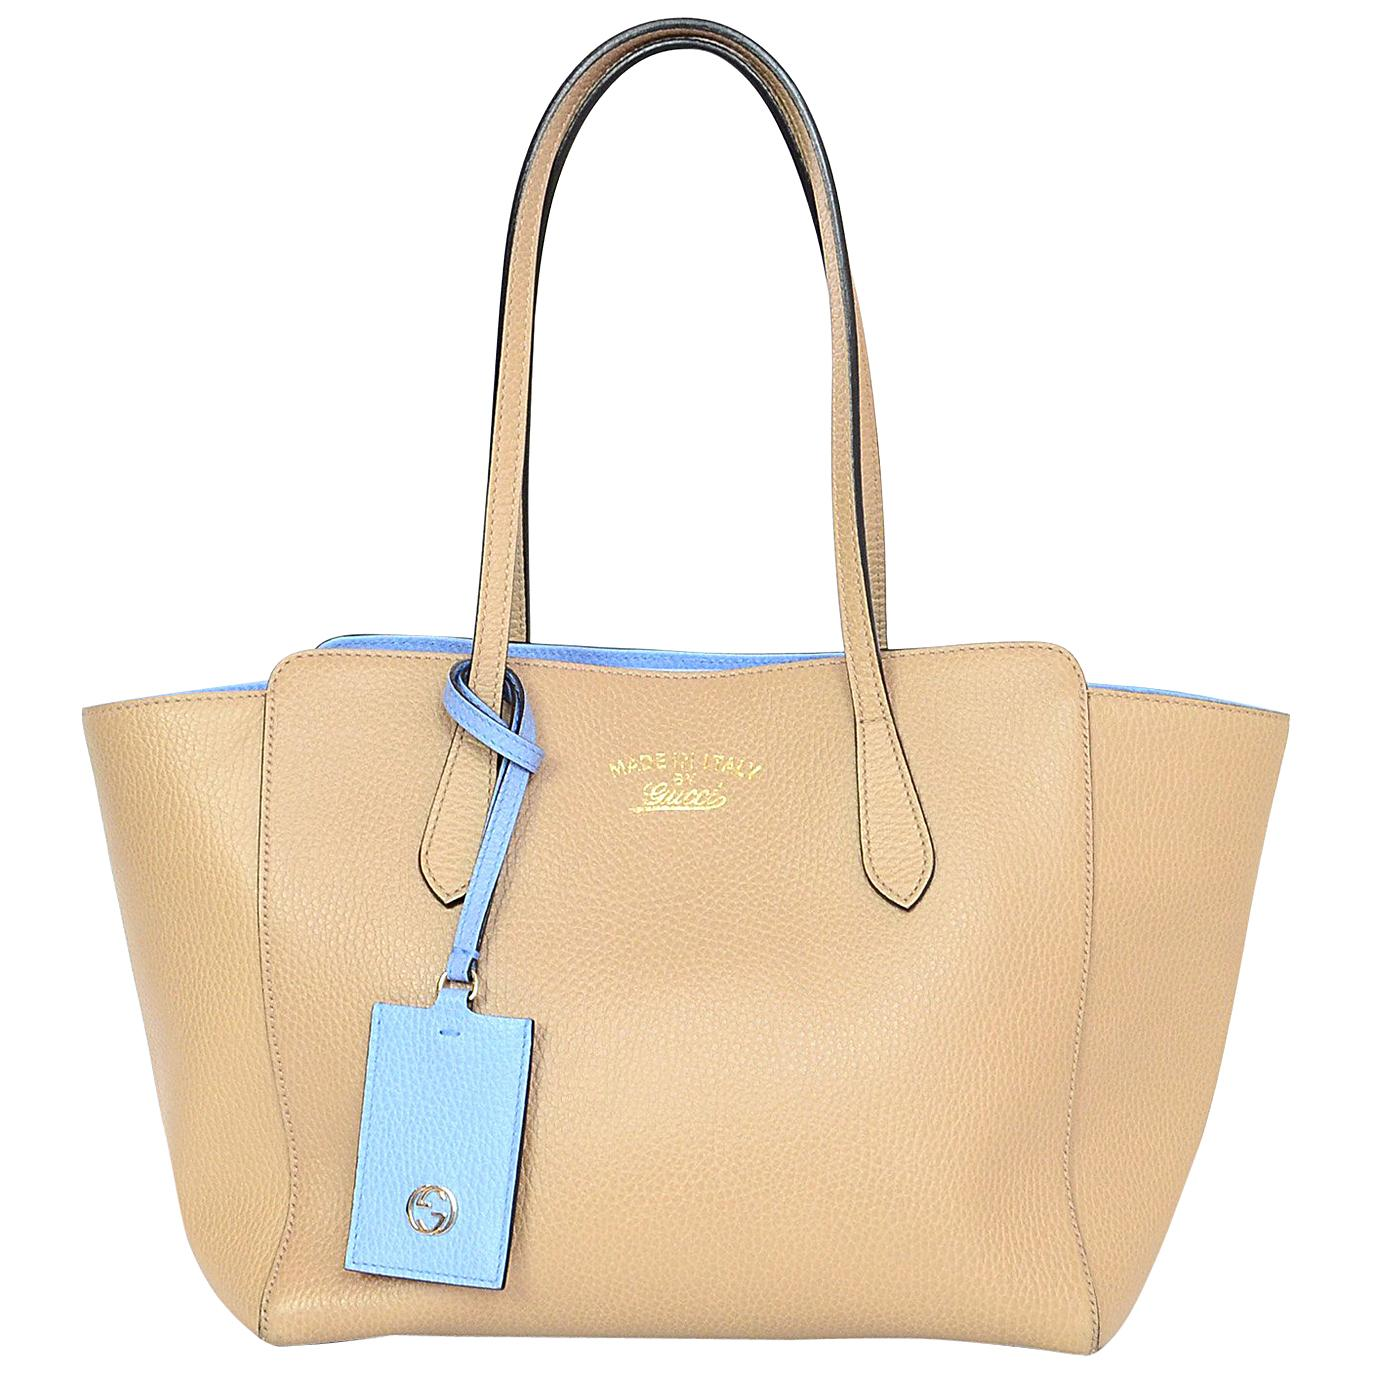 7ccc0be10494 Tote Bags on Sale at 1stdibs